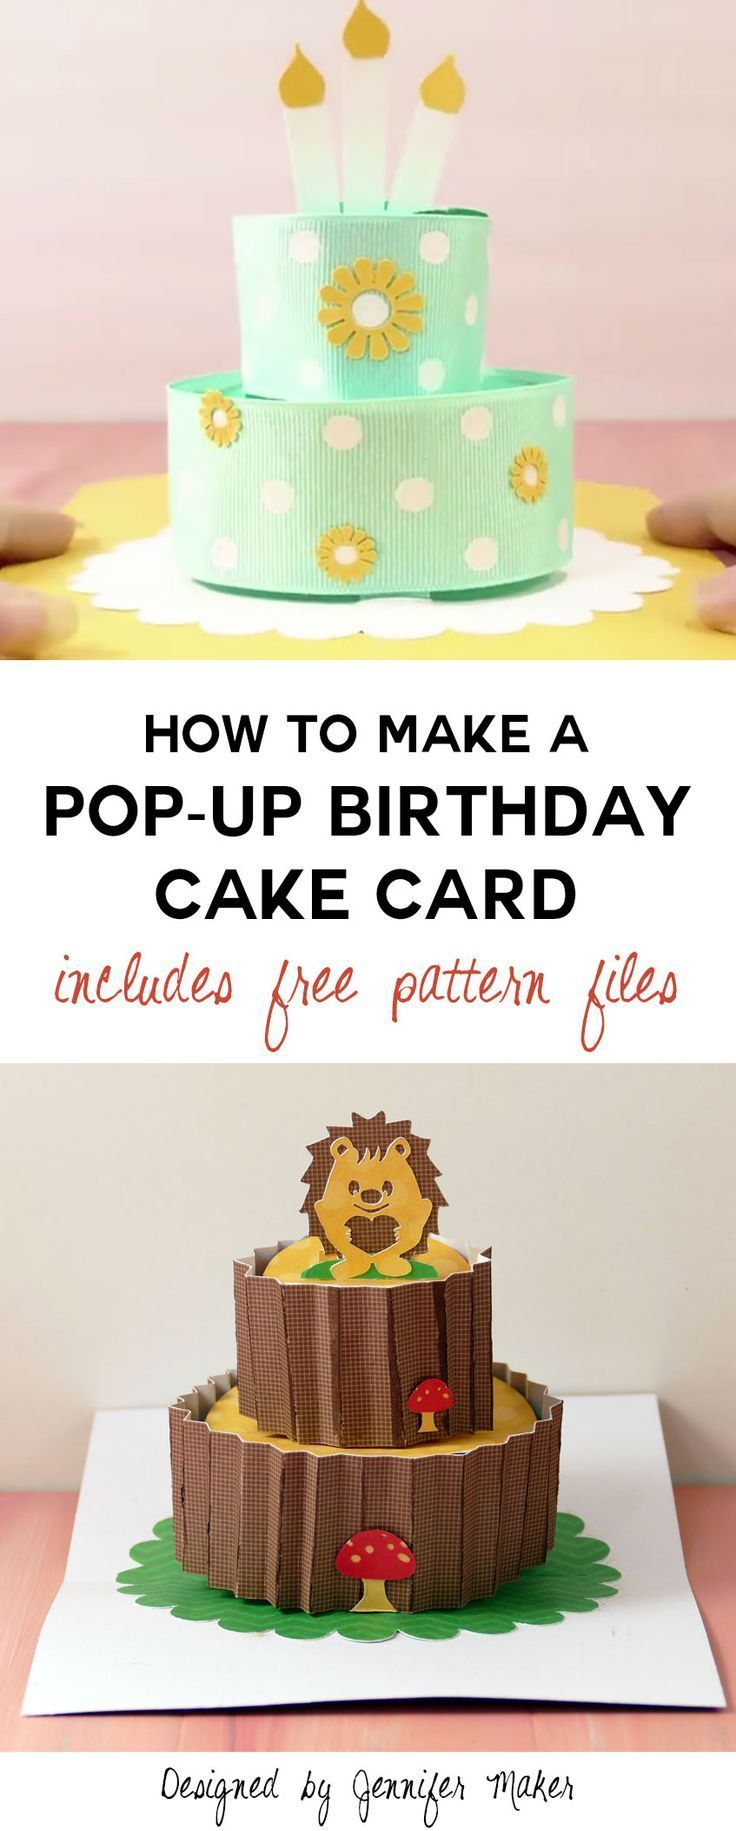 How To Make A Pop Up Birthday Cake Card Jennifer Maker Birthday Cake Card Birthday Card Pop Up Cake Card